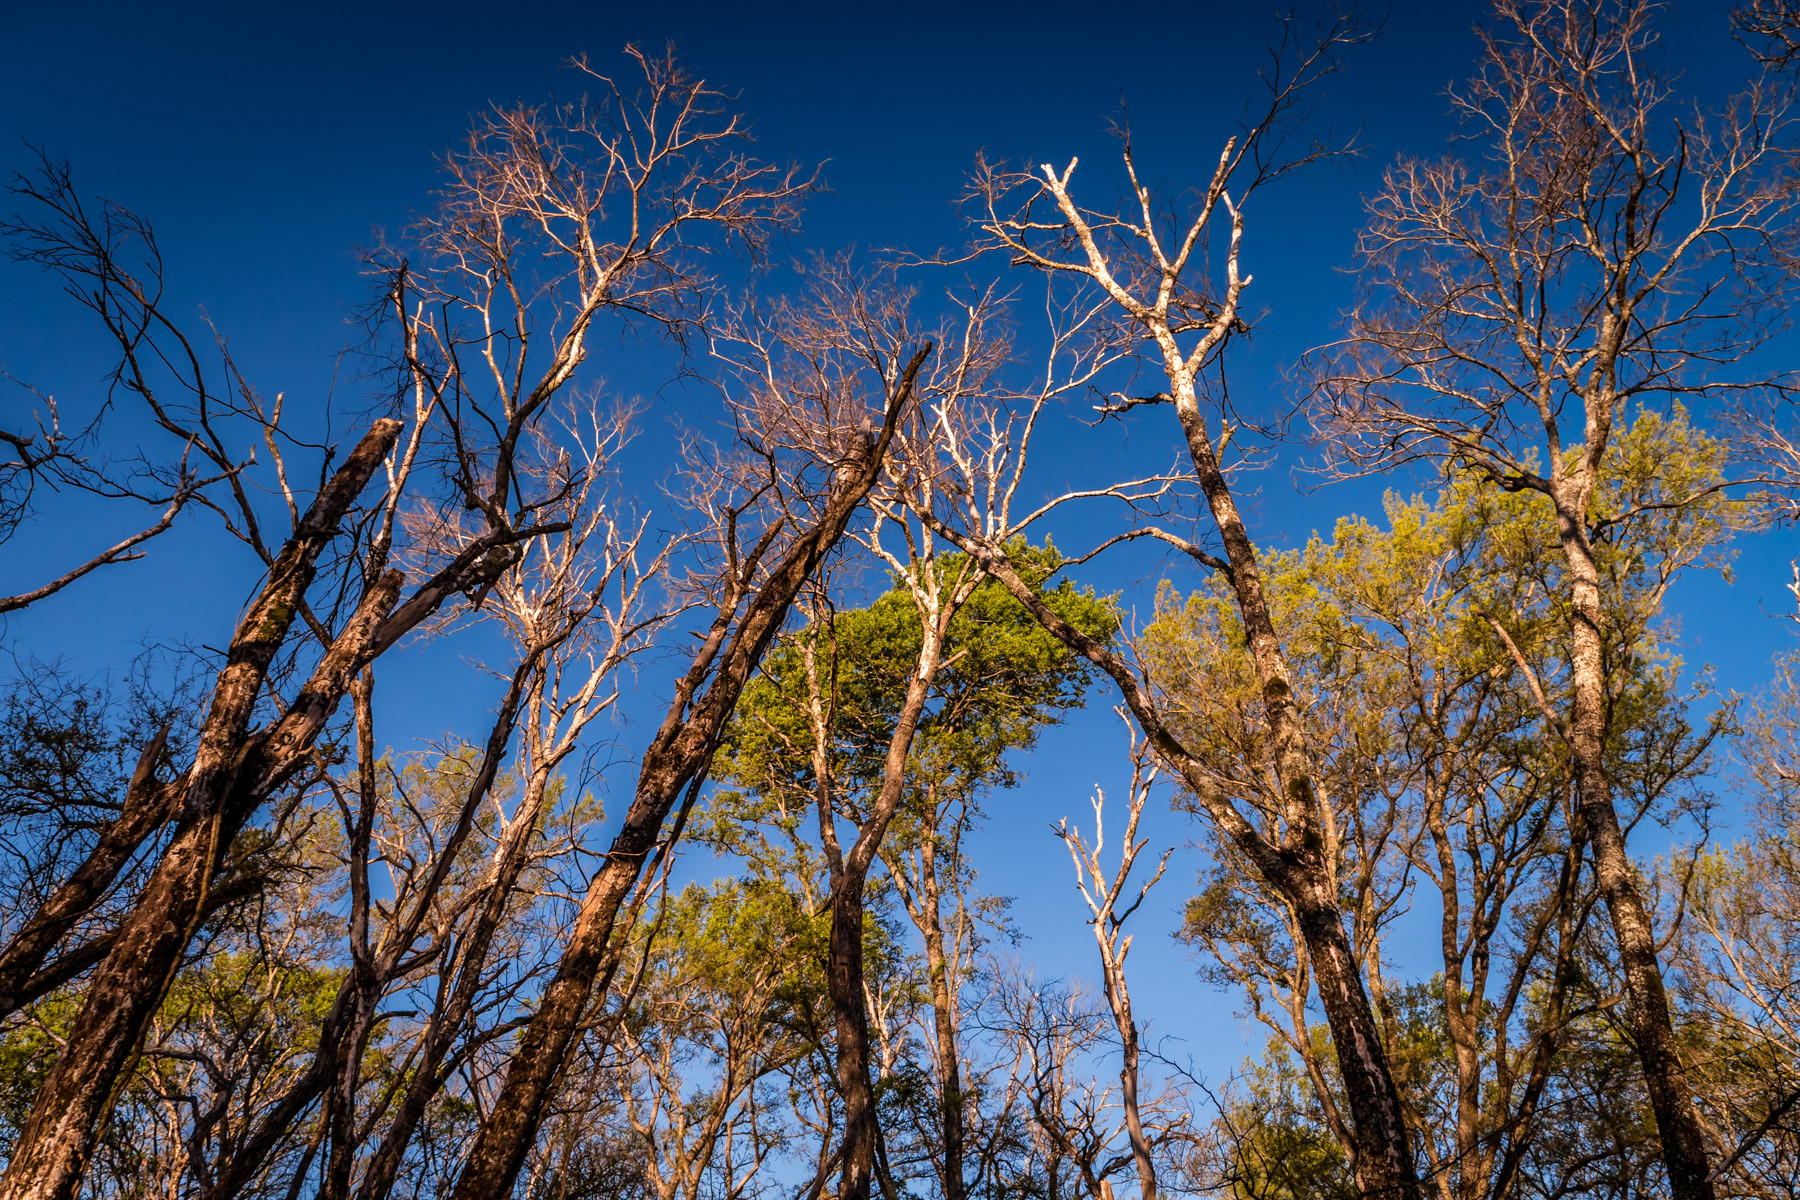 Trees in Dallas' Great Trinity Forest reach into the clear blue sky over North Texas.